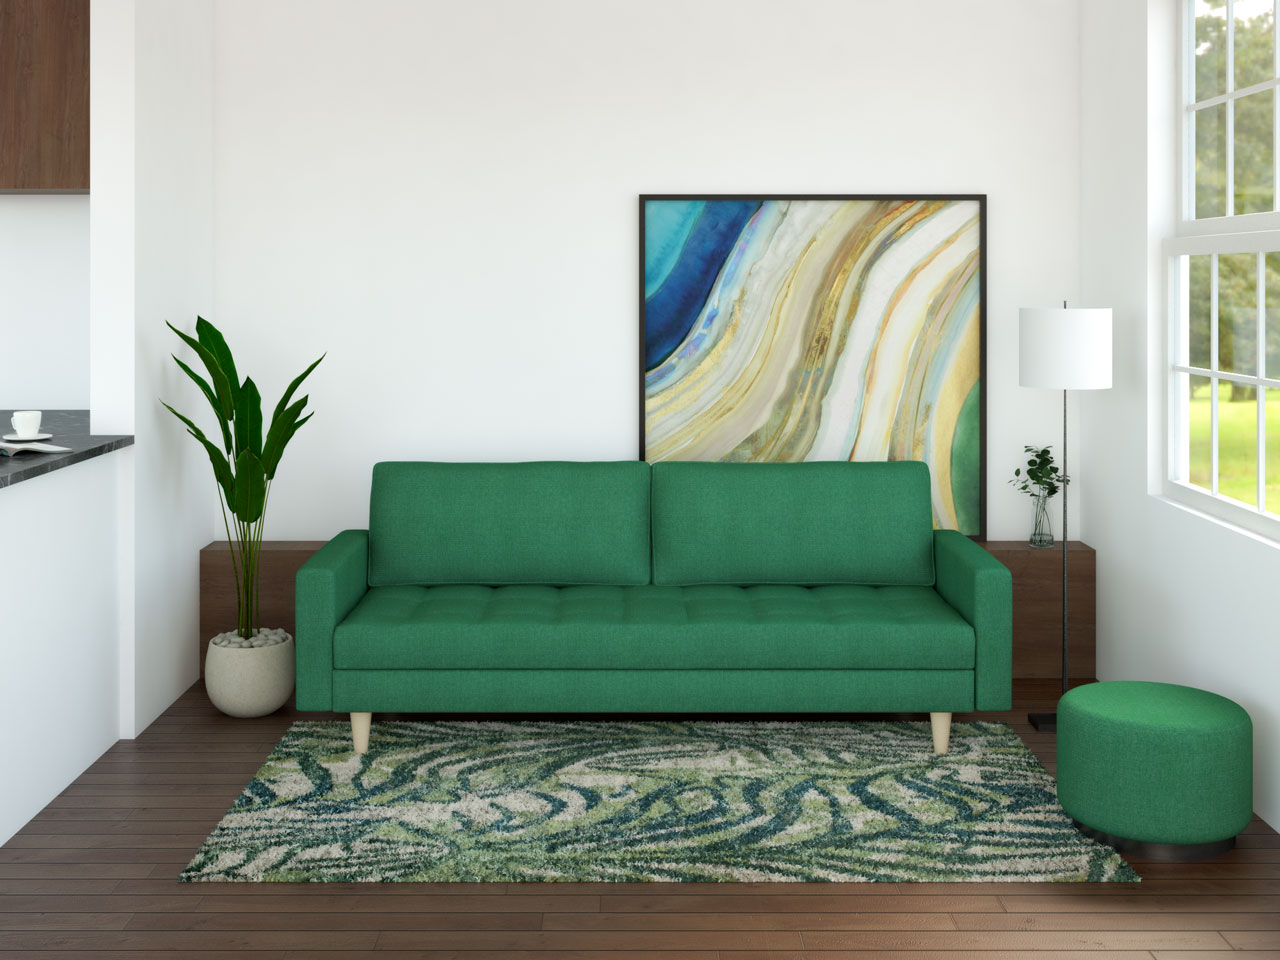 Emerald green furniture with dark brown wood floors